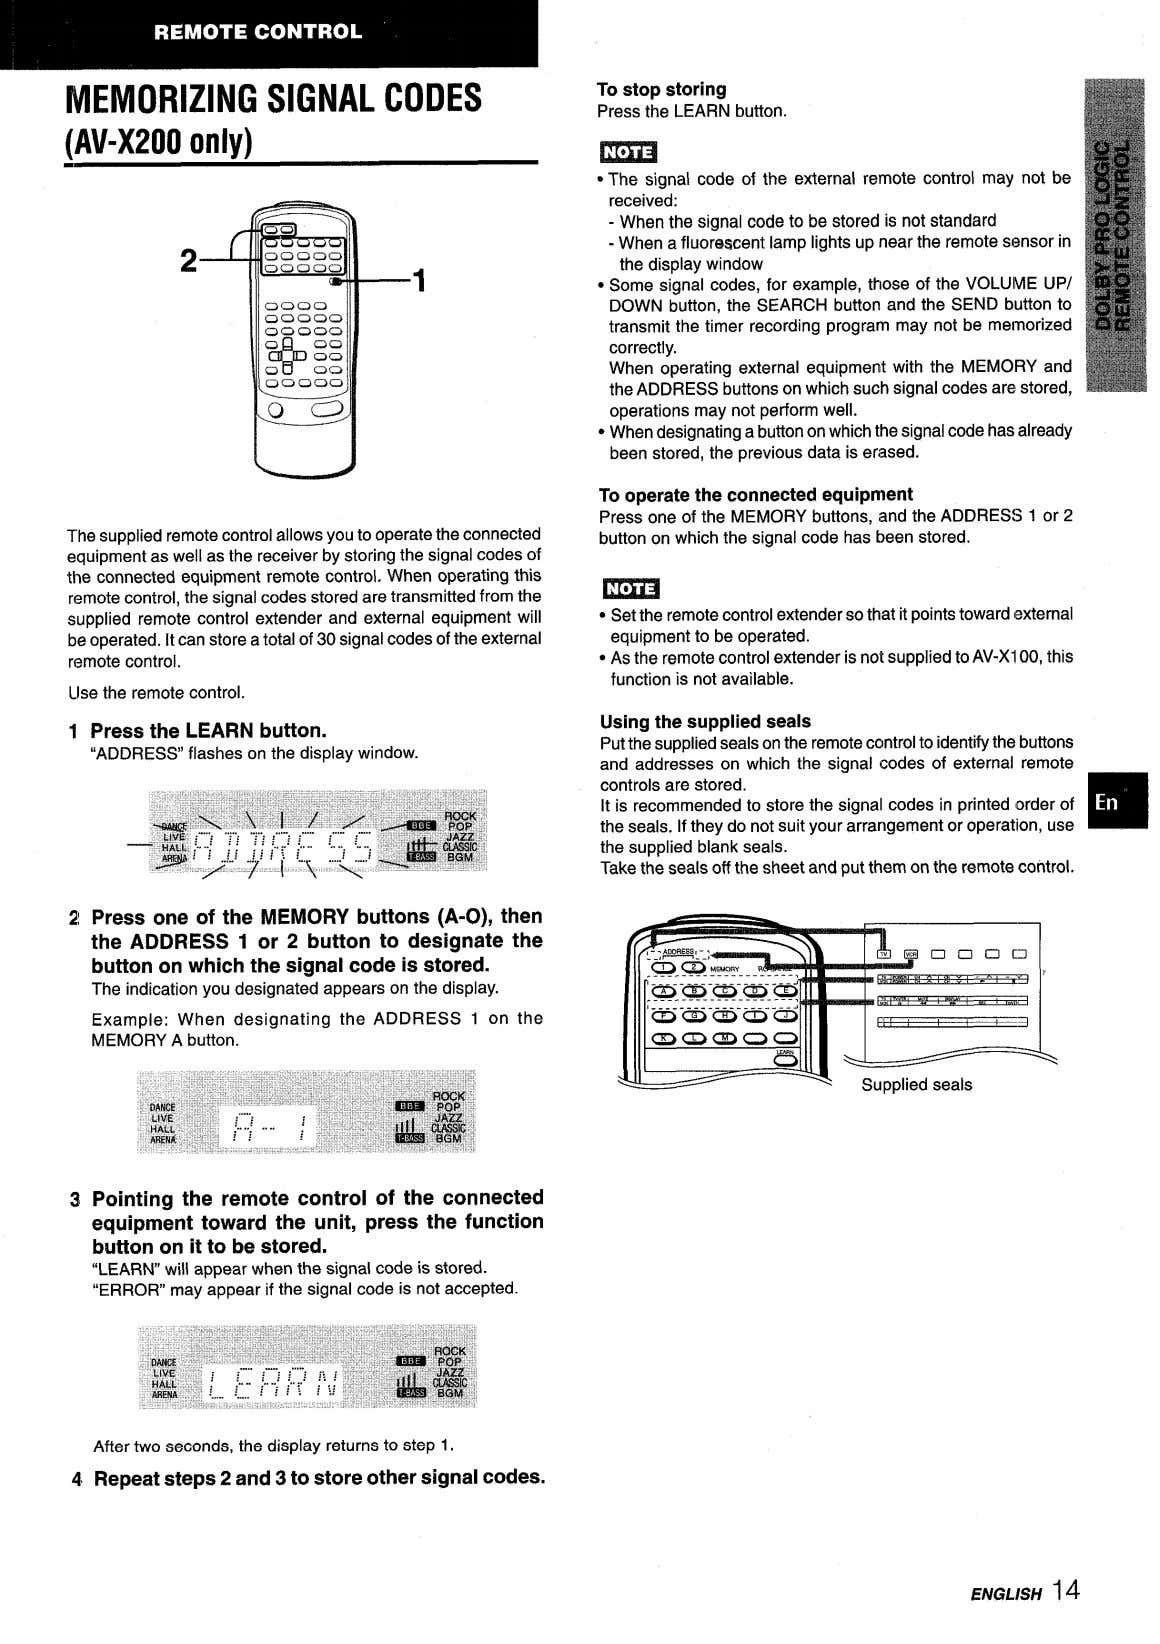 MEMORIZING SIGNAL CODES To stop storing Press the LEARN button. (AV-X200 onlv) m ● The